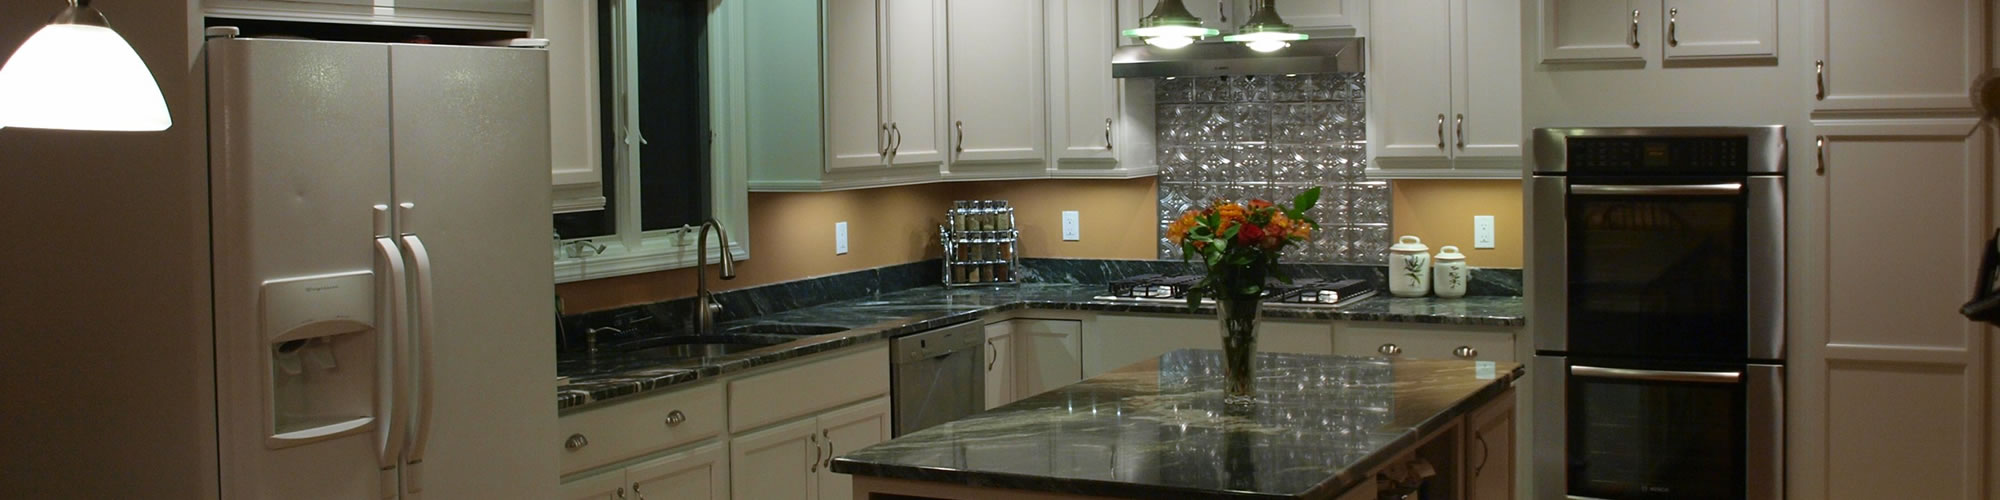 Lighting and Fixtures - Saint Louis Remodeling